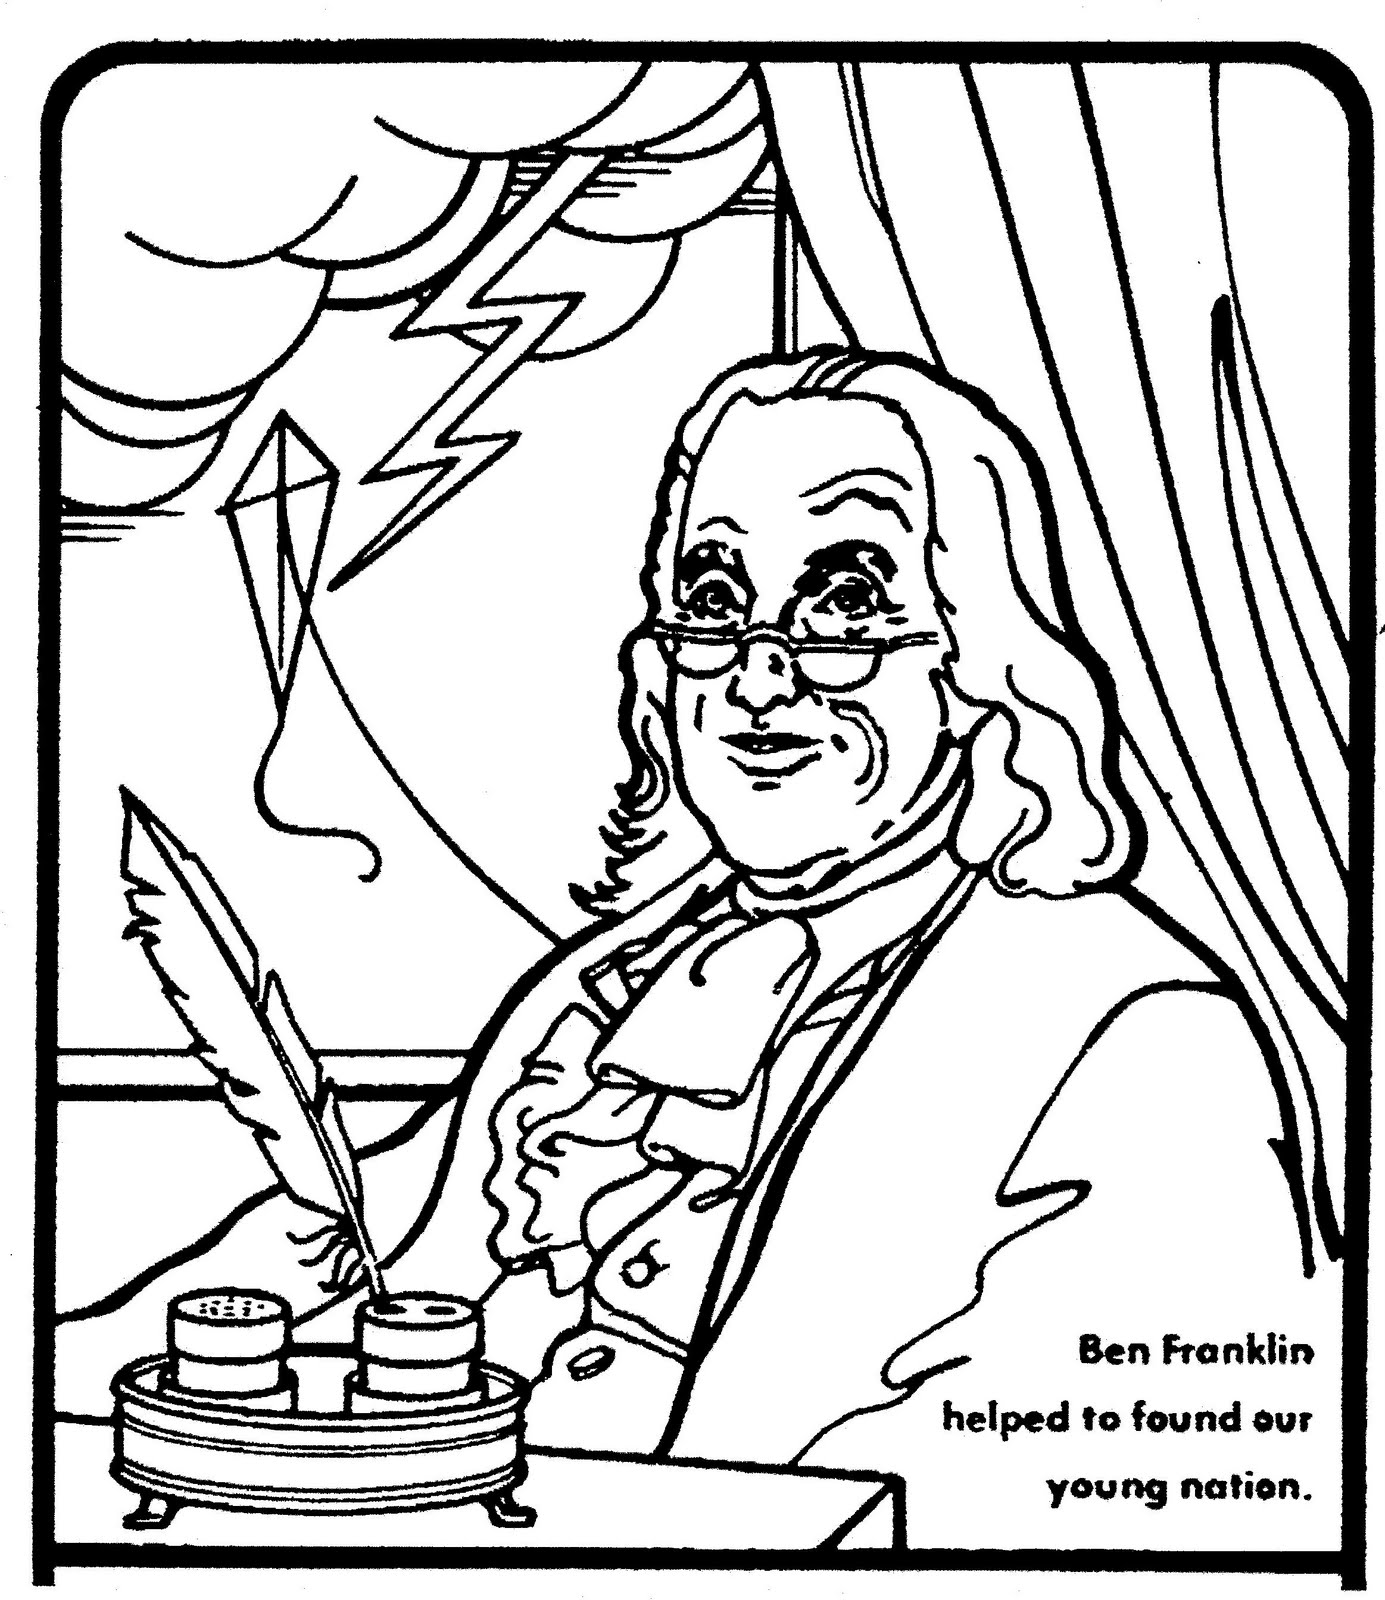 free printable benjamin franklin coloring pages | Mostly Paper Dolls: June 2010